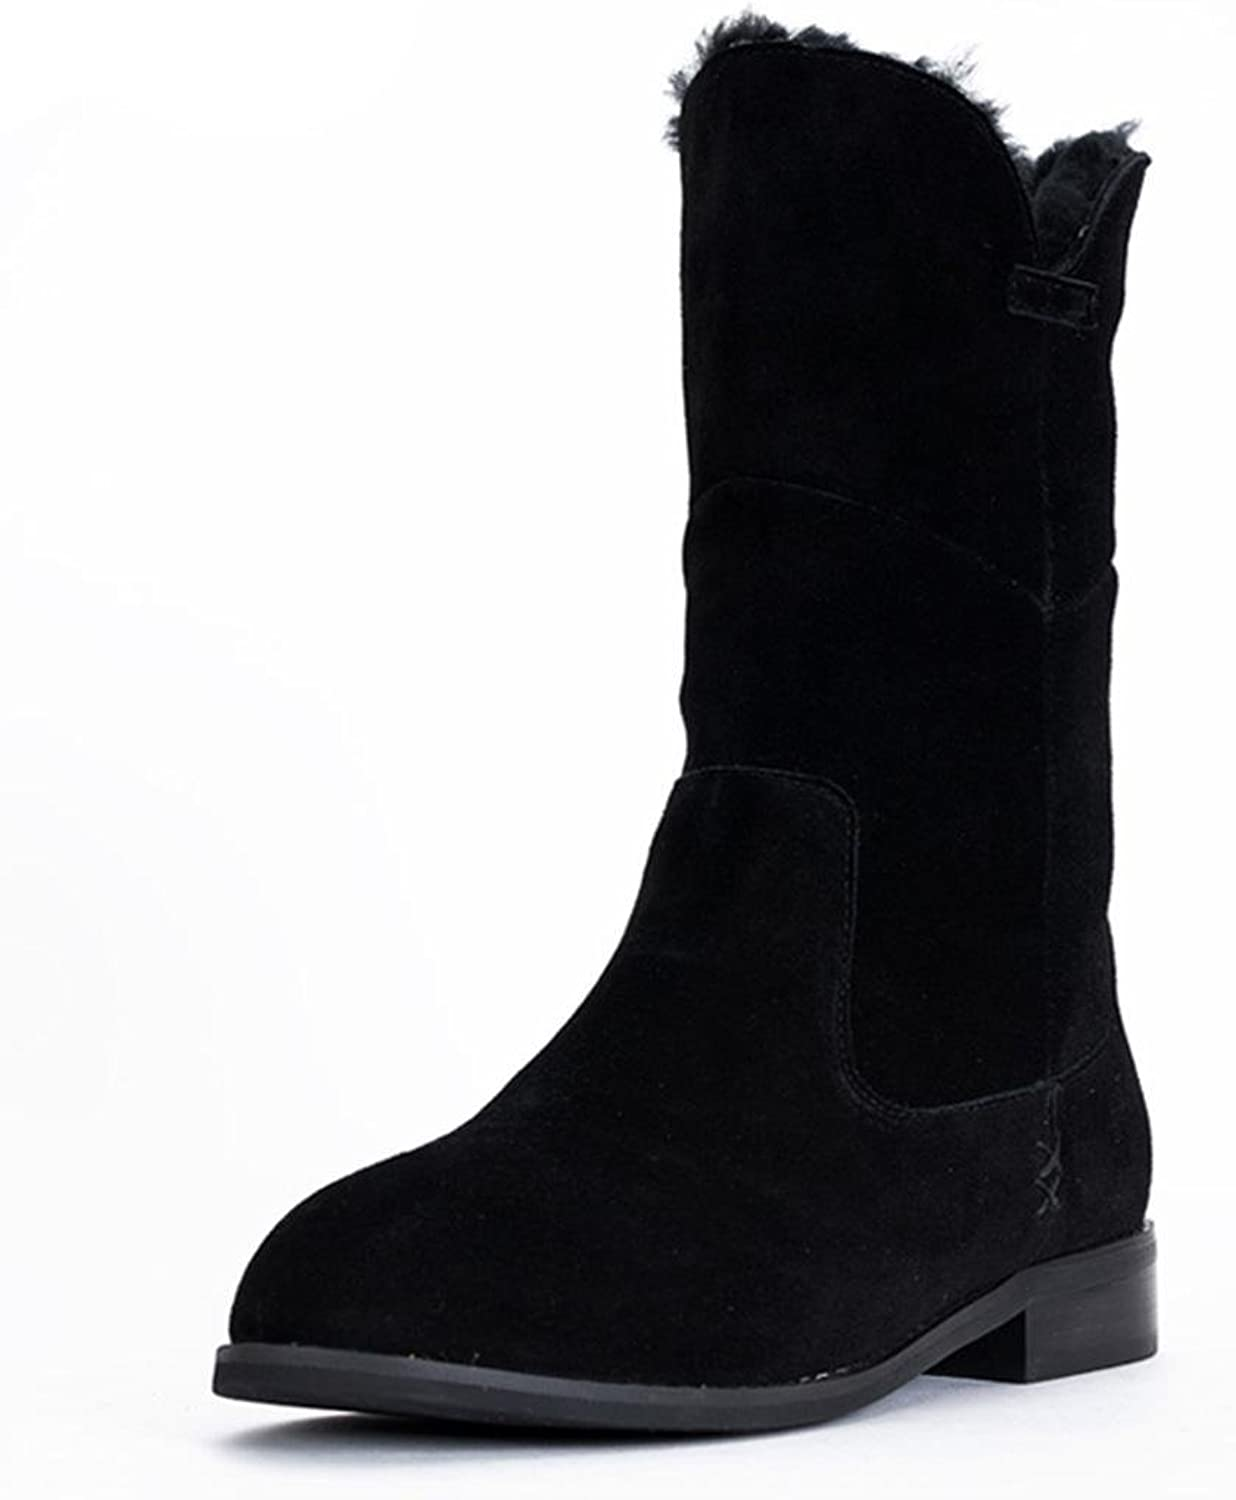 LIUshoes L&L Female Boots Rough with Low-Heeled in The Tube Boots Women's Pointed and Bare Boots